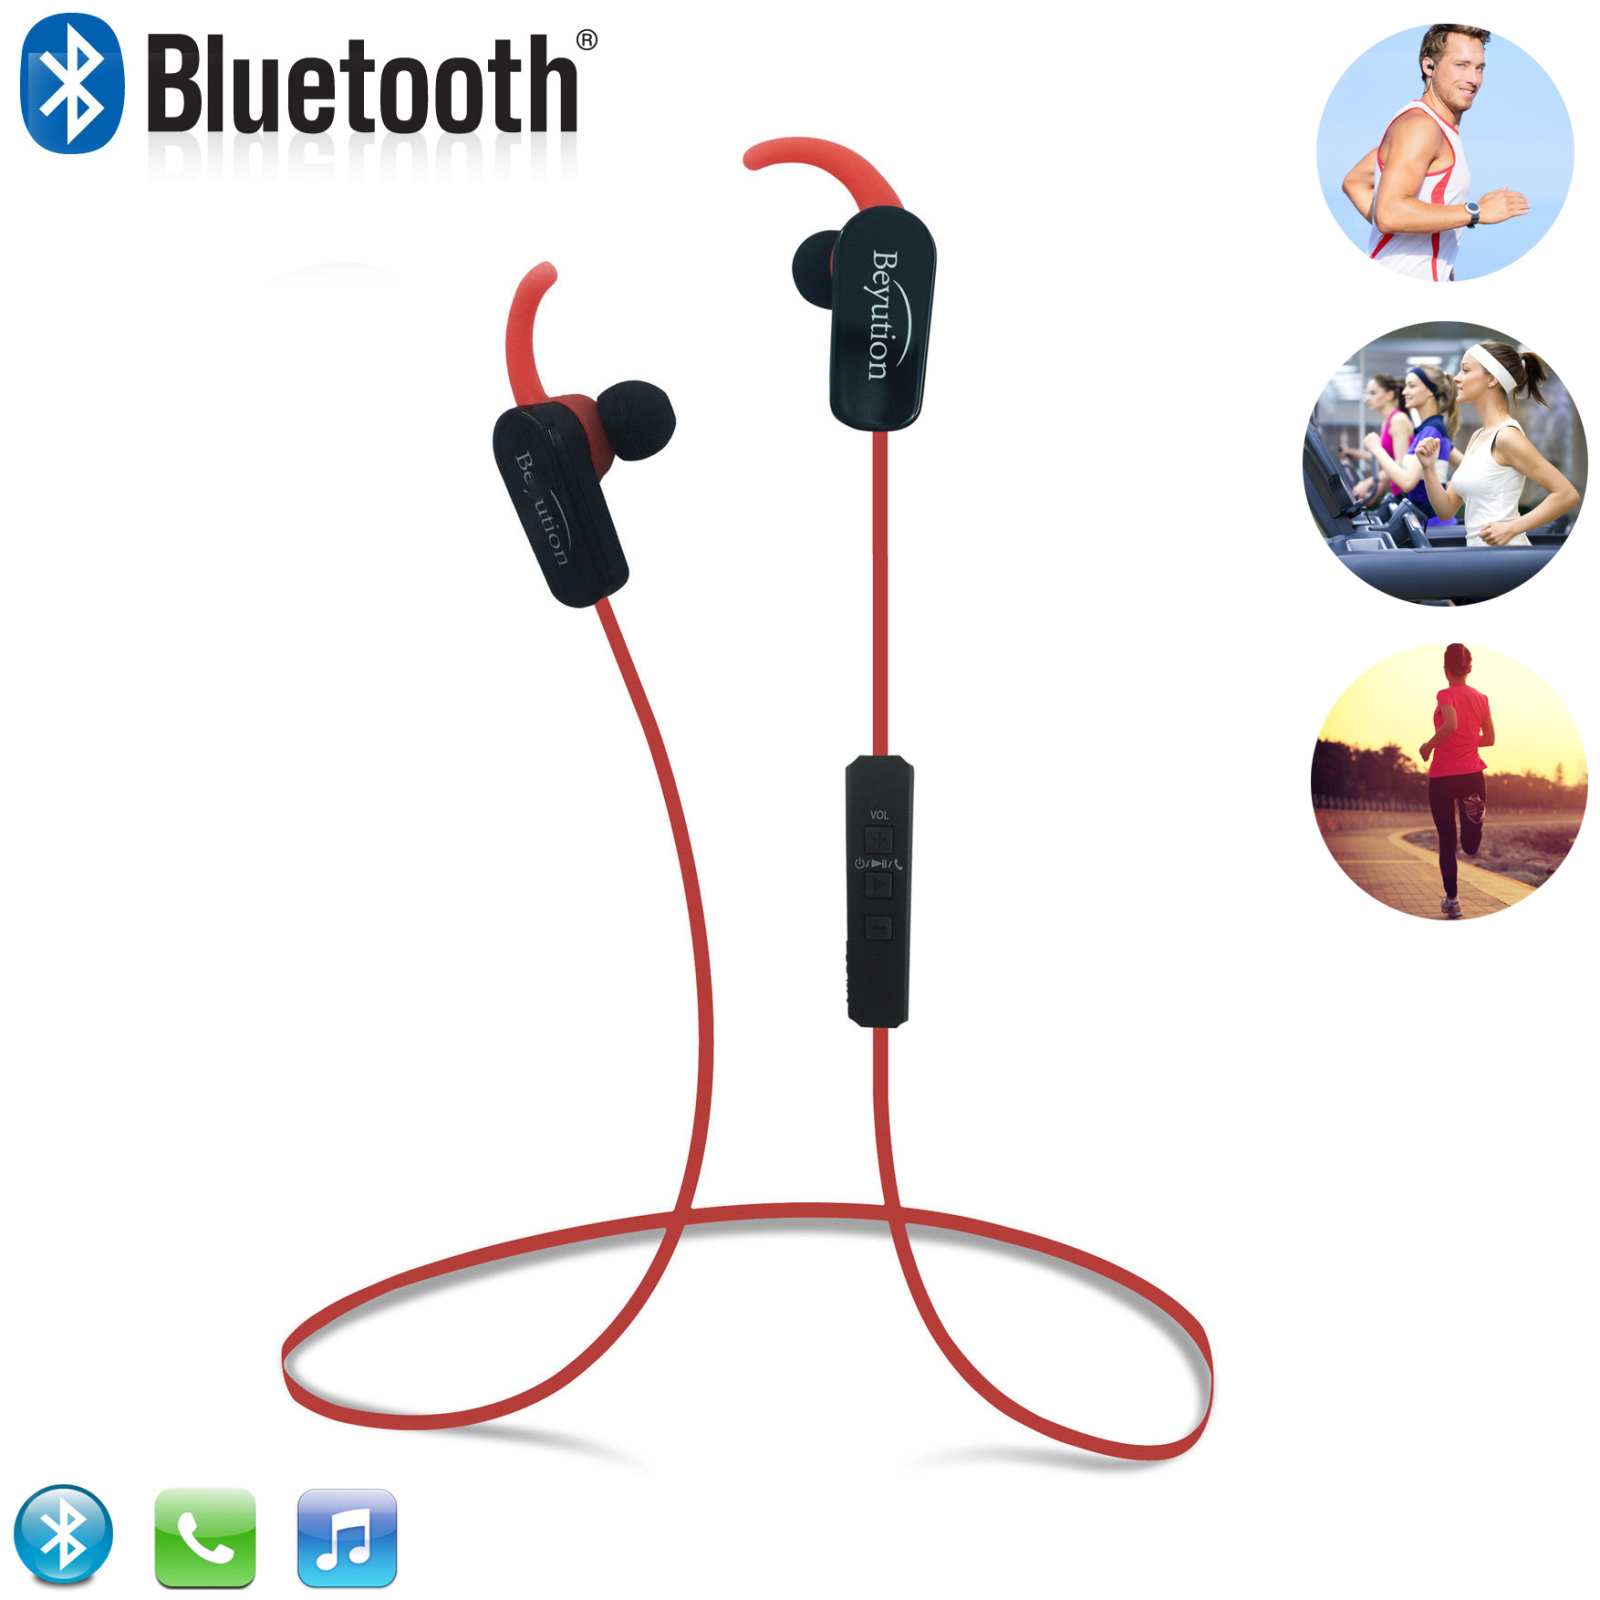 Beyution BT508S Bluetooth V4.1 Sport Headphones, Wireless Earbuds for Running Workout, Noise Cancelling Sweatproof Cordless Headset for Gym Use, Earphones w/Mic, iPhone Android Laptop PC (Red)